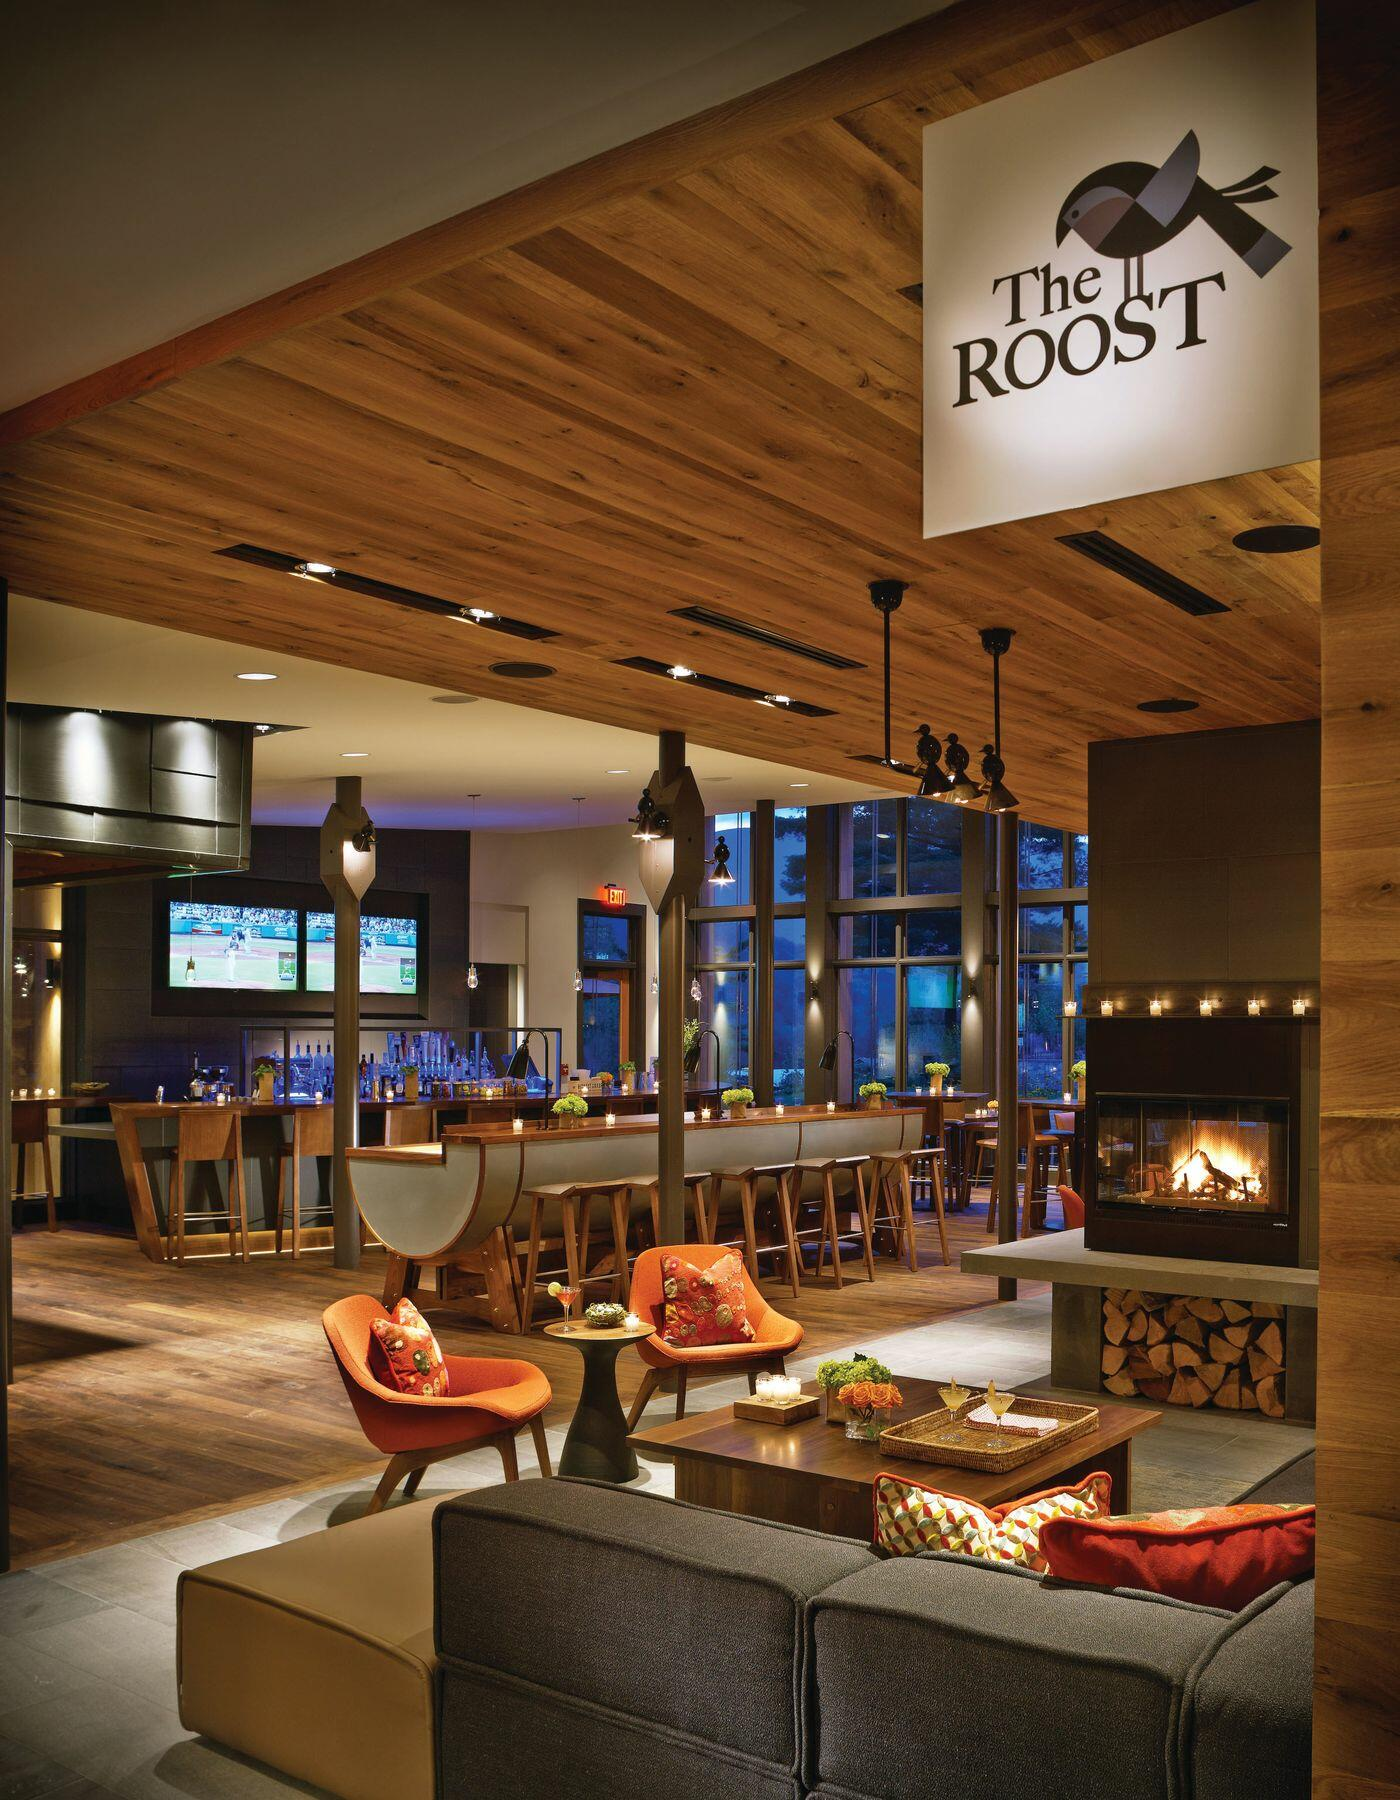 Cozy interior of The Roost restaurant.